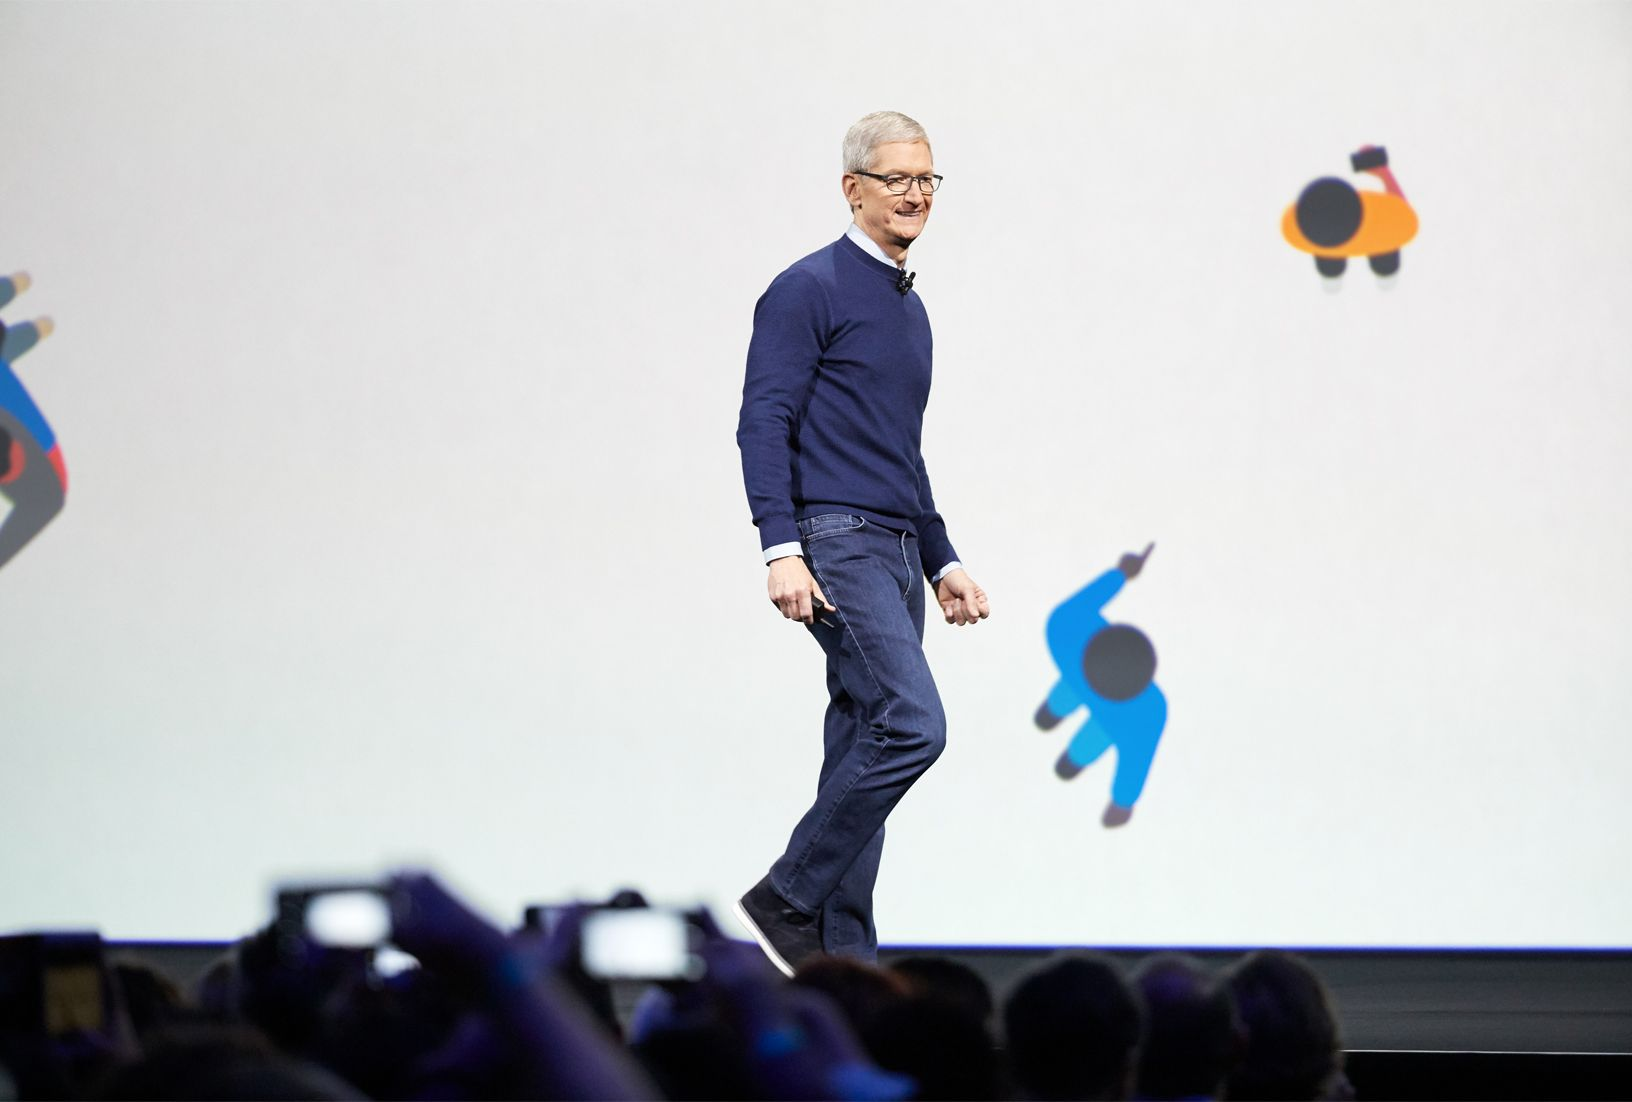 12 brilliant business advice tips from Apple CEO Tim Cook